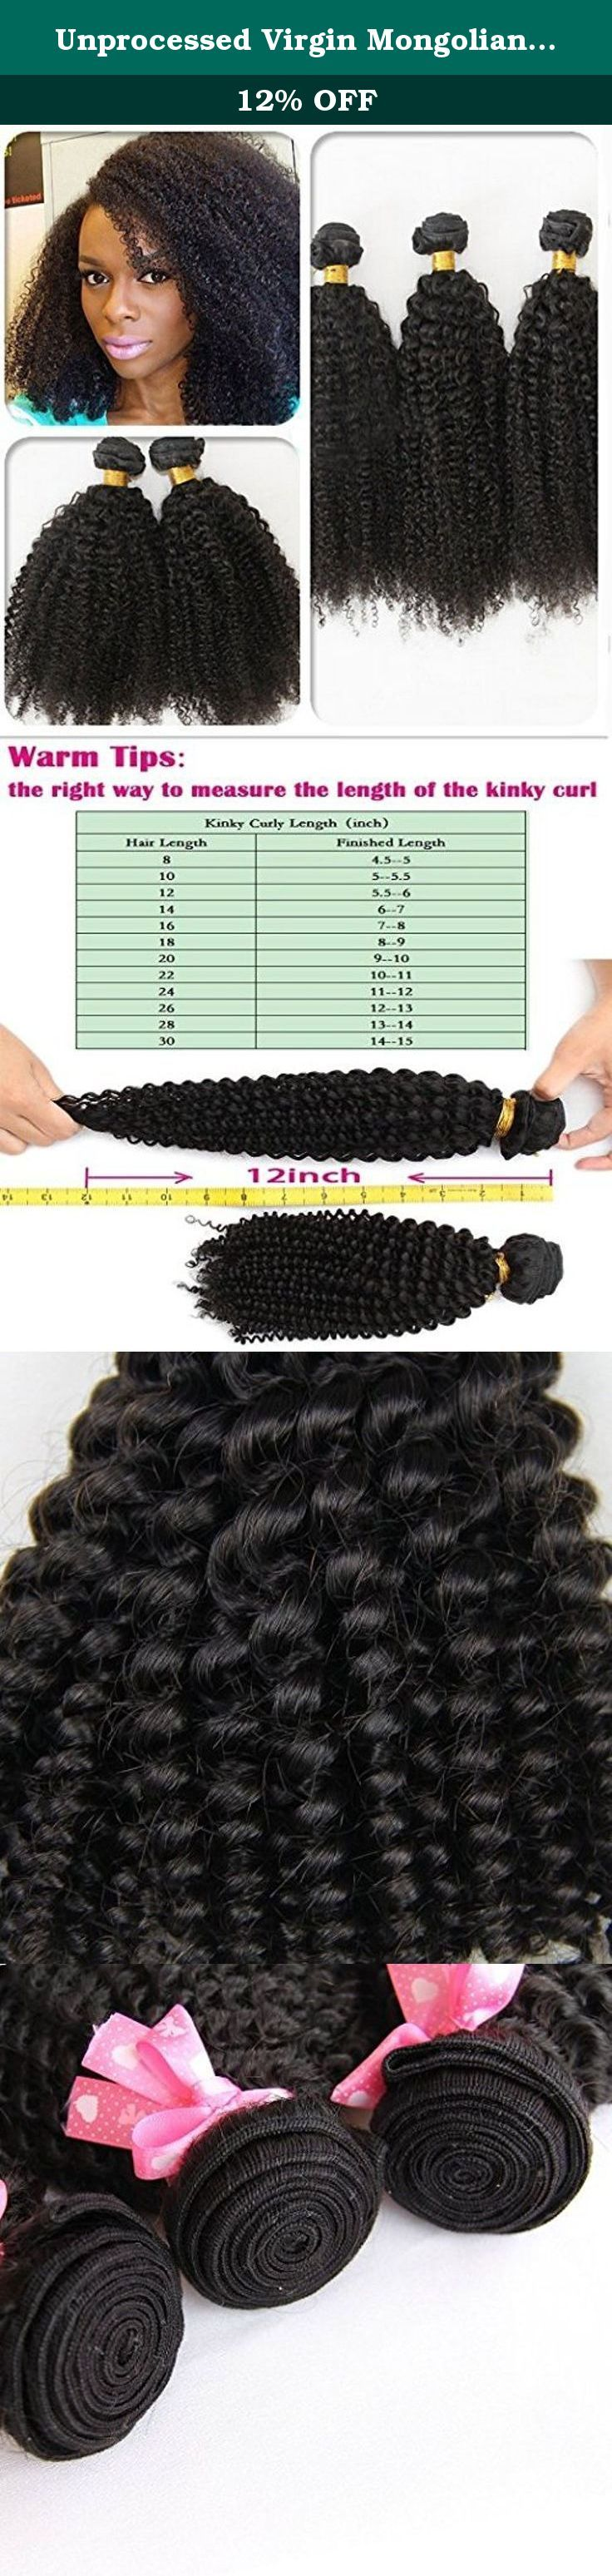 """Unprocessed Virgin Mongolian Afro Kinky Curly Hair Extensions for Black Women 12''. Hair Parameter 1)Hair Material:100% virgin Mongolian Human hair 2)Hair Colour:natural black color/1b 3)Hair Grade:5A Grade (virgin Mongolian hair remy hair) 4)Hair Length:8"""", 10"""", 12"""", 14"""", 16"""", 18"""", 20"""", 22"""", 24"""", 26"""", 28"""",30"""" 5)Hair Weight:100gram/pc Totally 300grams for 3pcs 6)Available Texture: Natural Straight,Body Wave,Deep Wave,Kinky Curl,Jerry Curl,Deep Curl,Loose Weave etc, or custom as ur need…"""